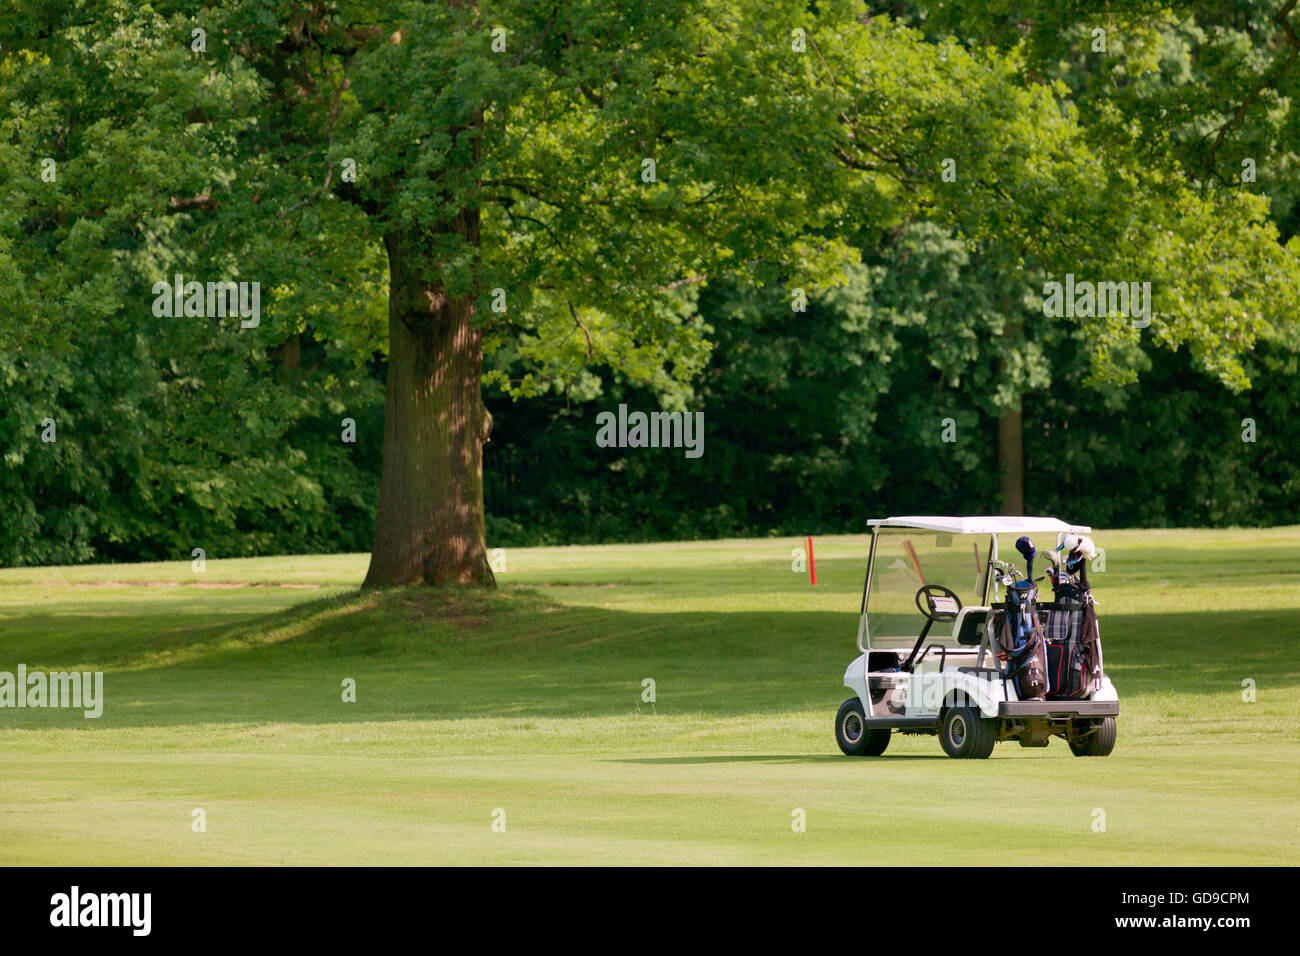 Golf buggy at Finchley Golf Club - Stock Image